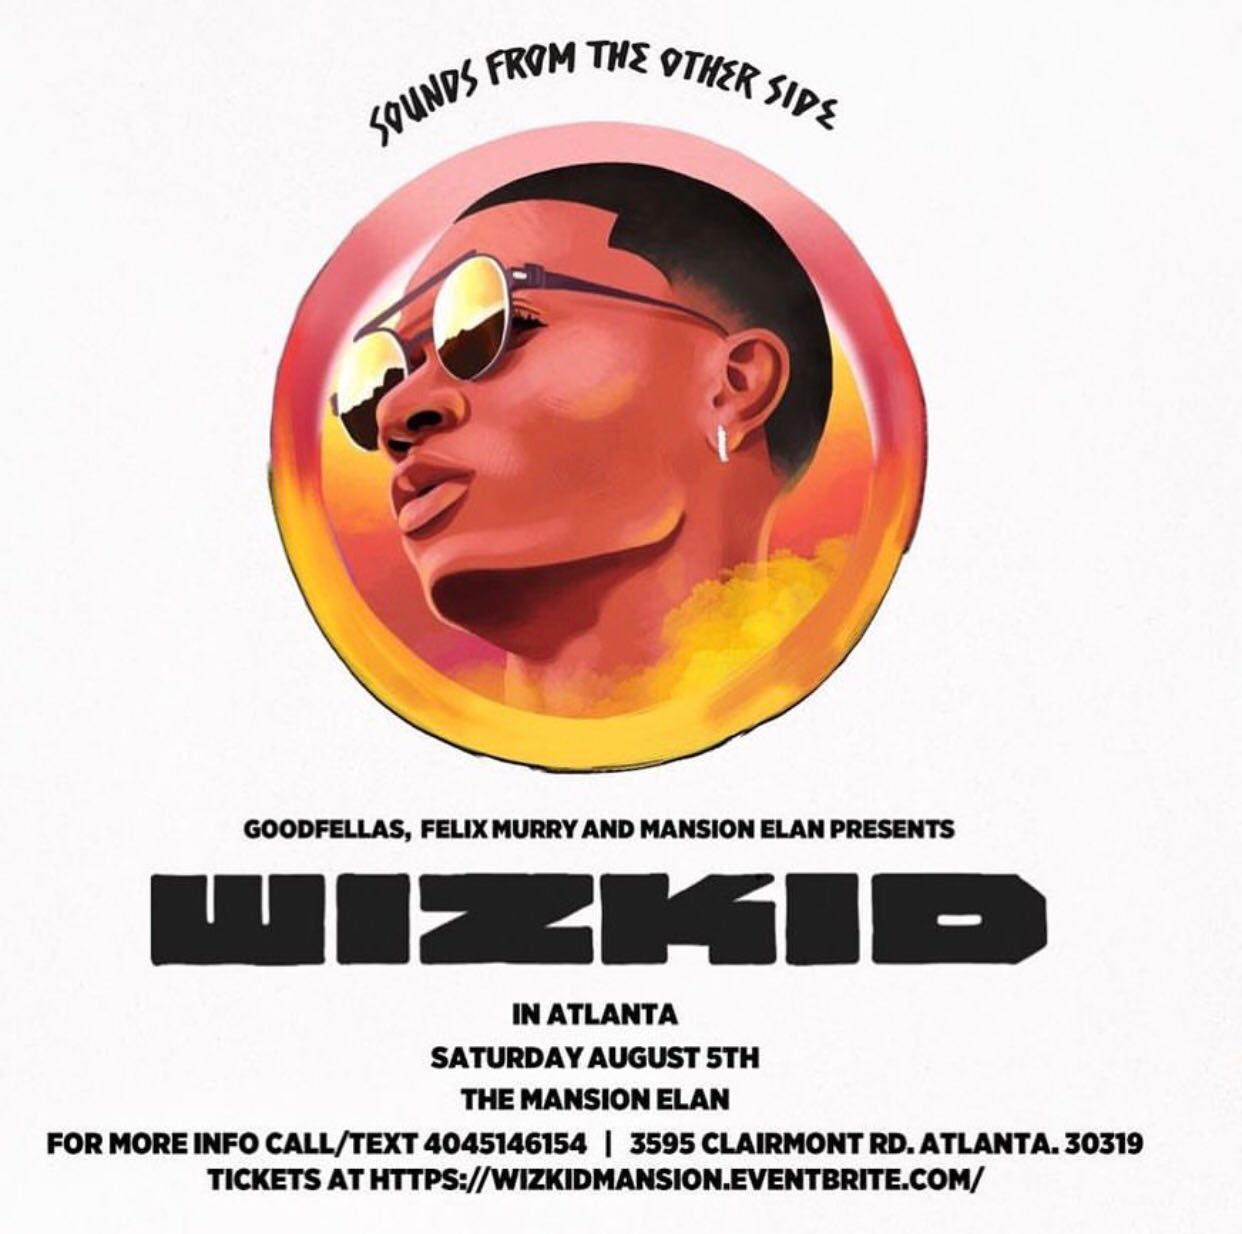 de768705 32b9 41c8 a150 cc0bf3f6fc1c WIKID Live in Atlanta, Saturday August 5th